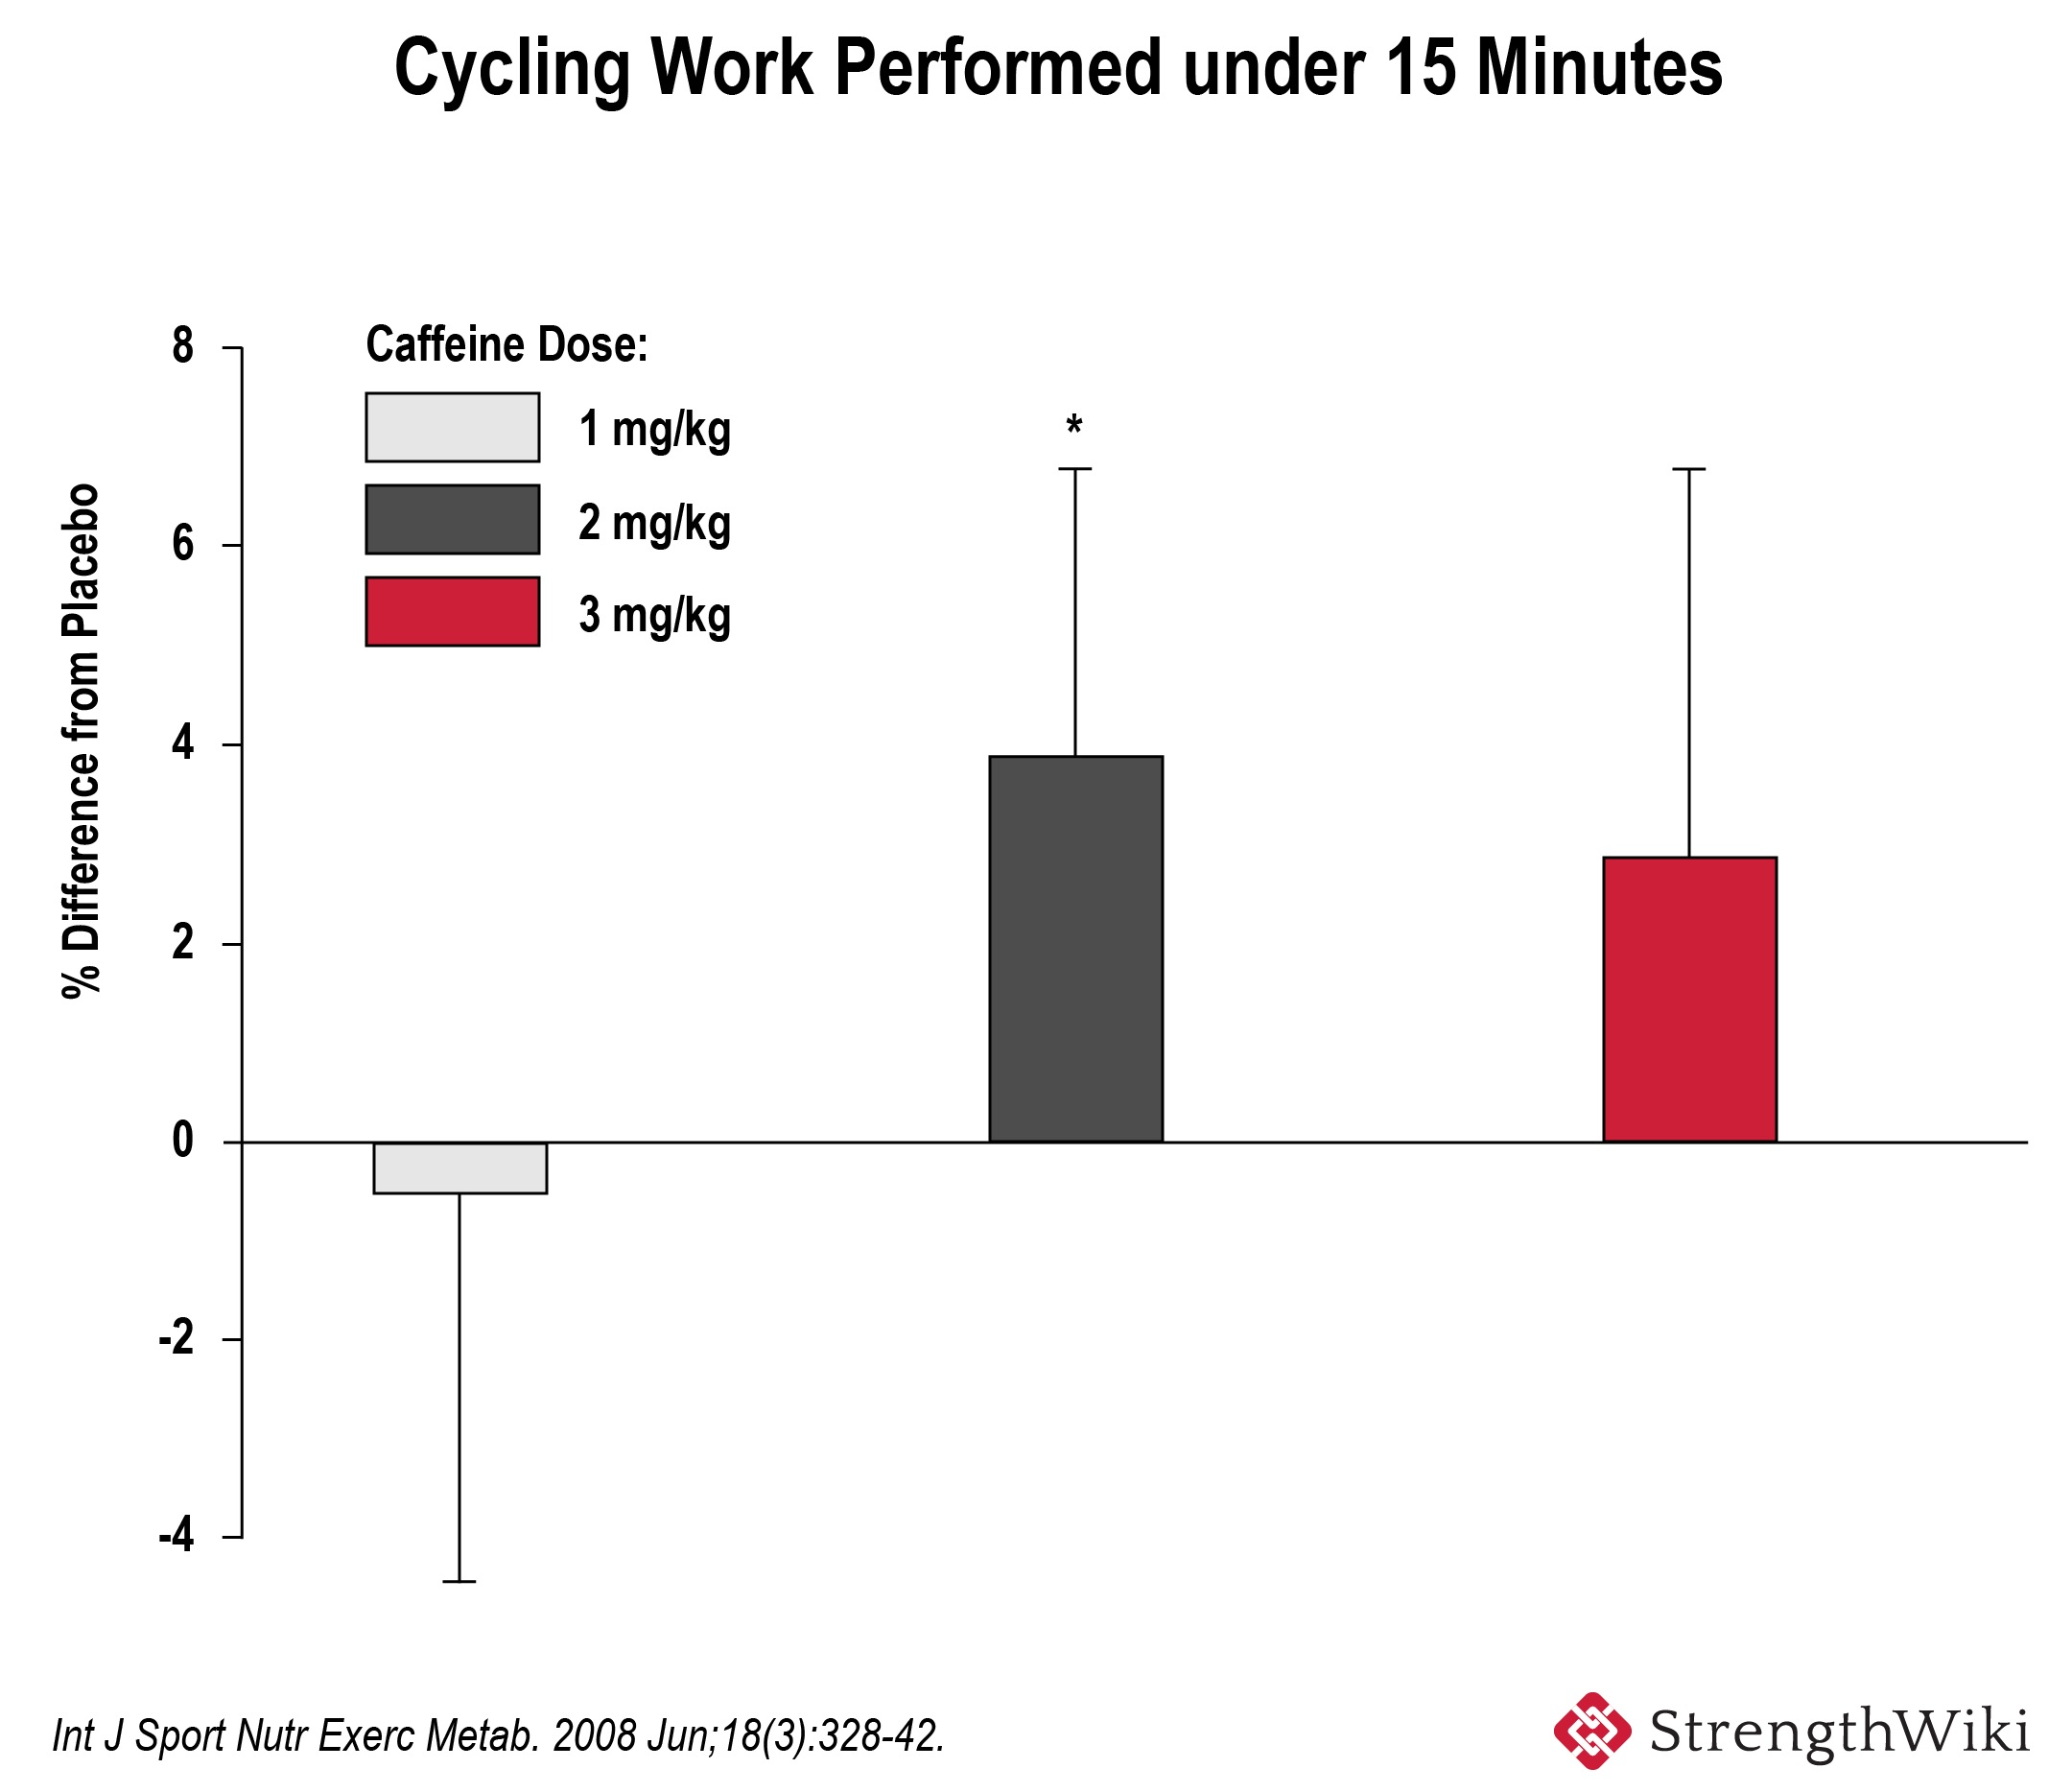 Cycling work with caffeine